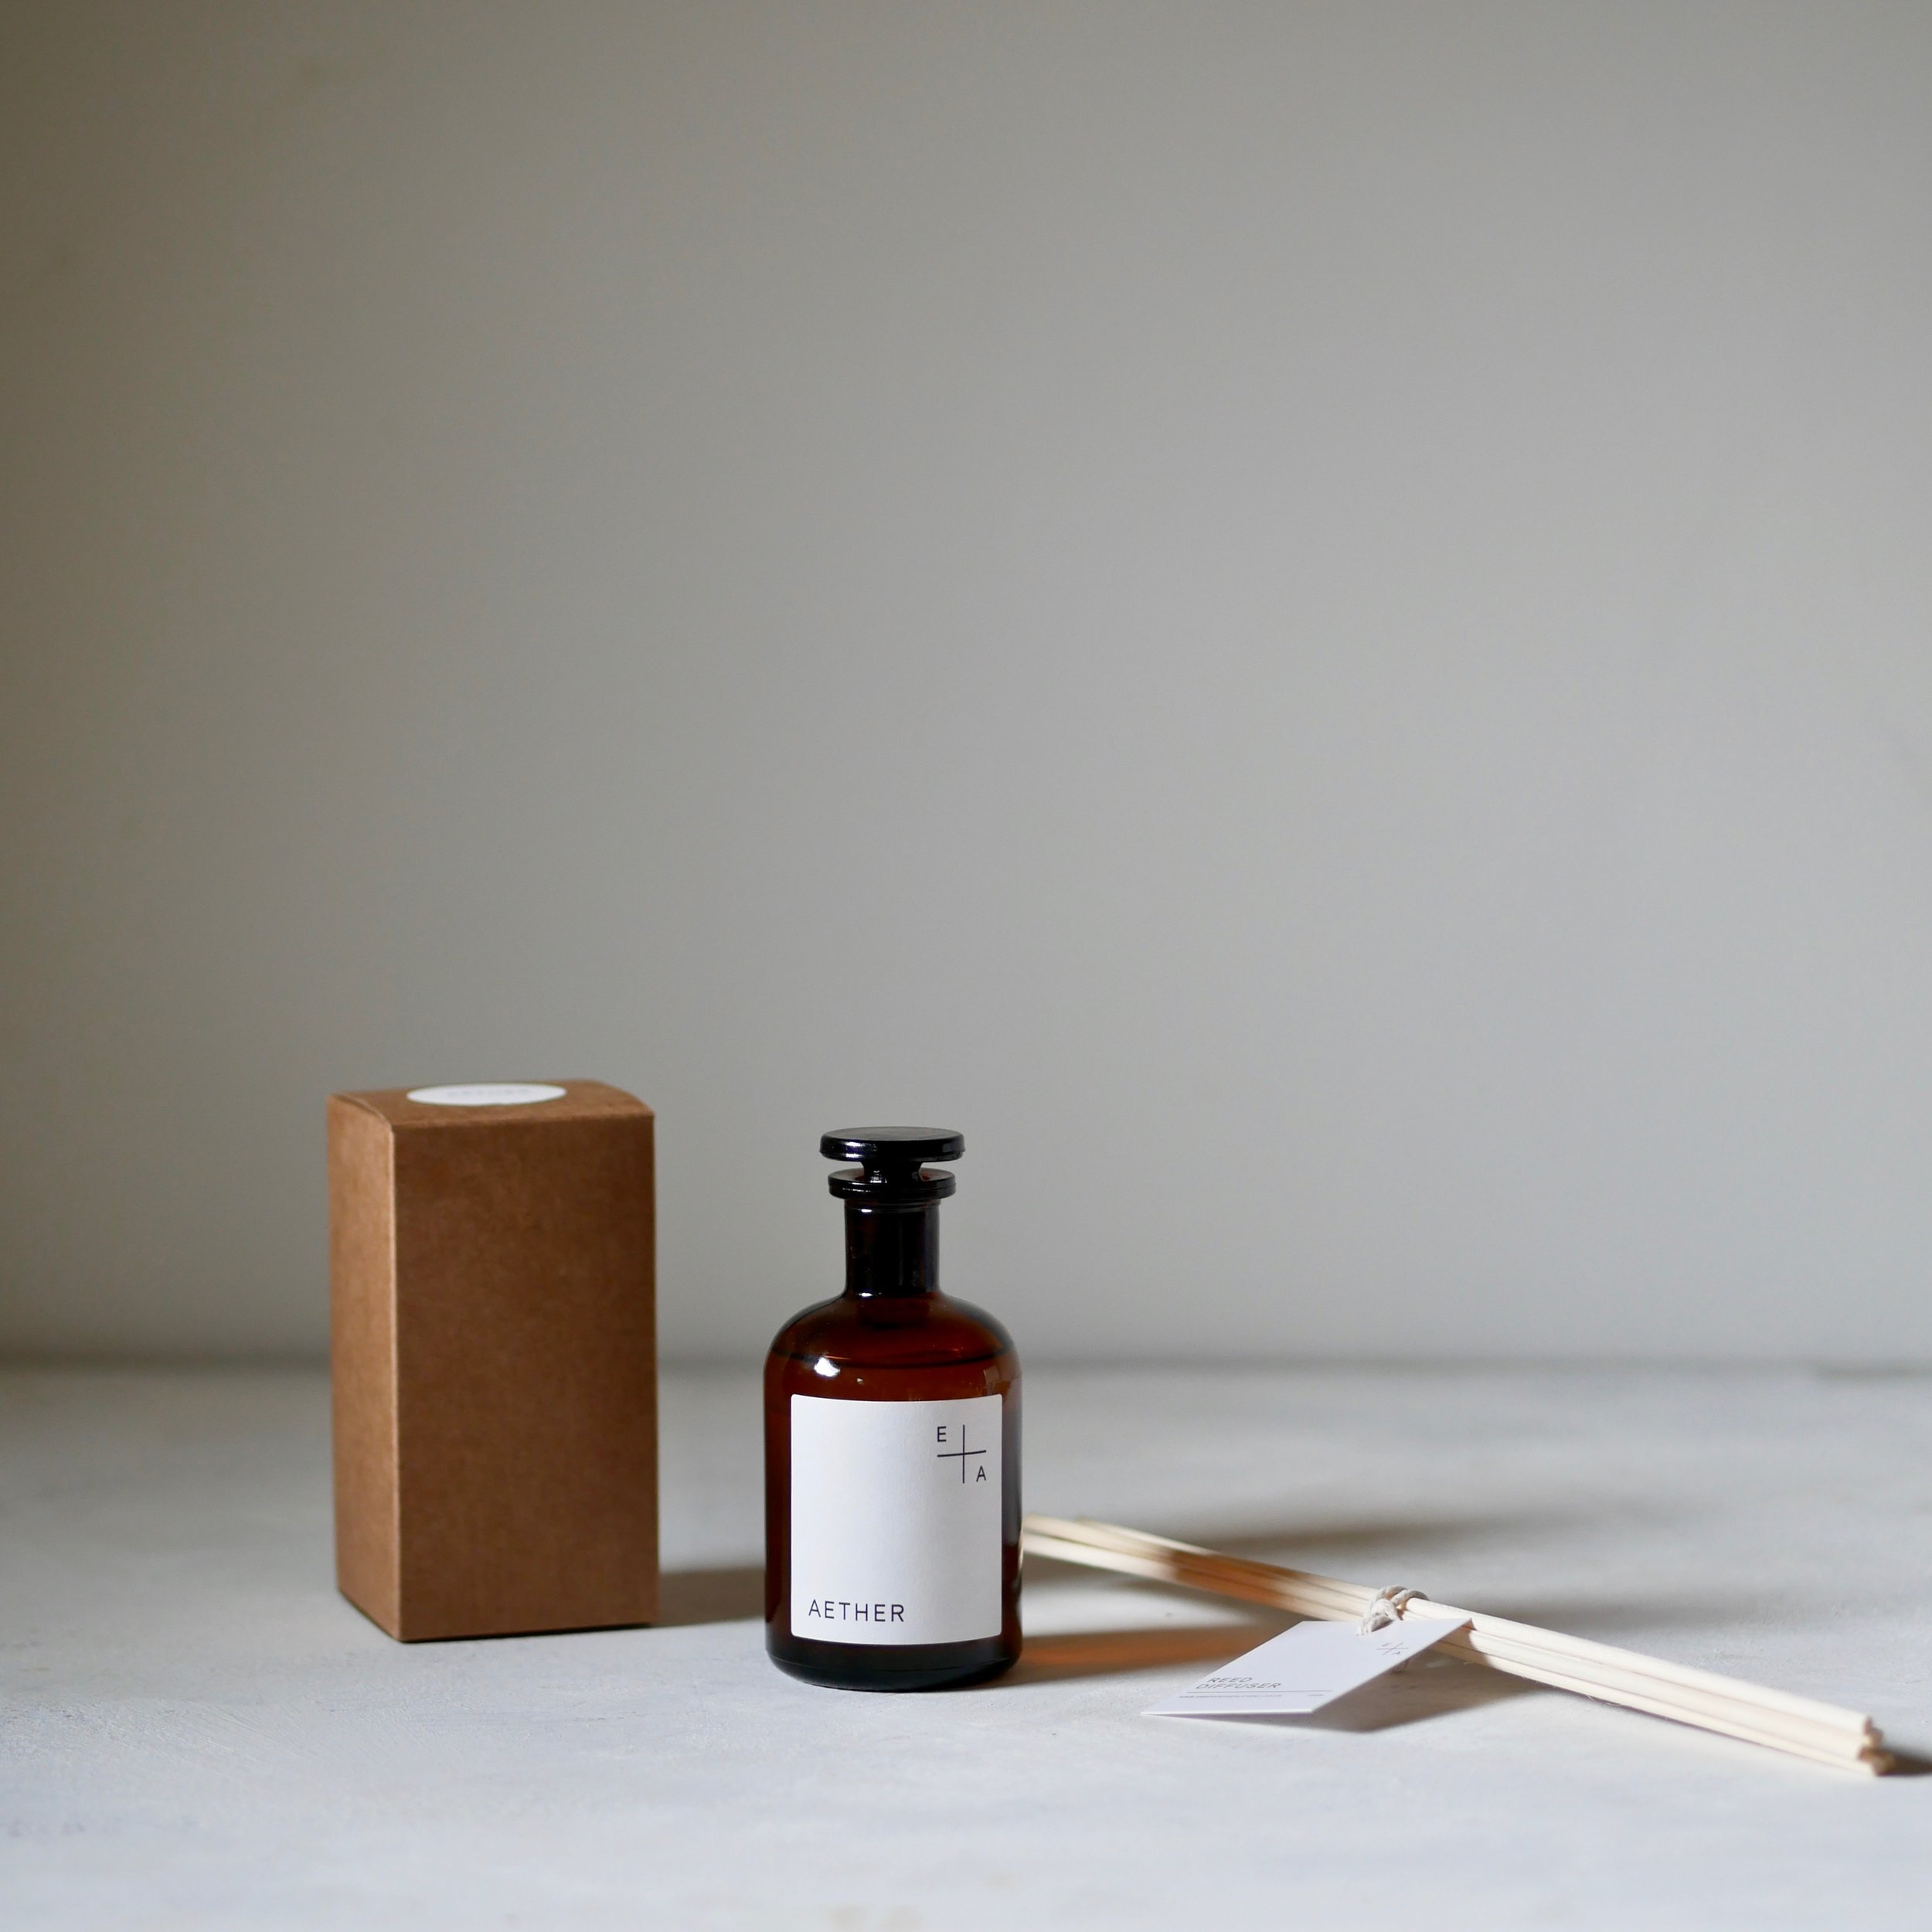 Organic Reed Diffusers - Natural aromatherapy scent gently diffused into the air to help relax, restore and re-energise. Pure essential oils infused into an organic base, diffusers are non-toxic, long lasting and 100% natural.